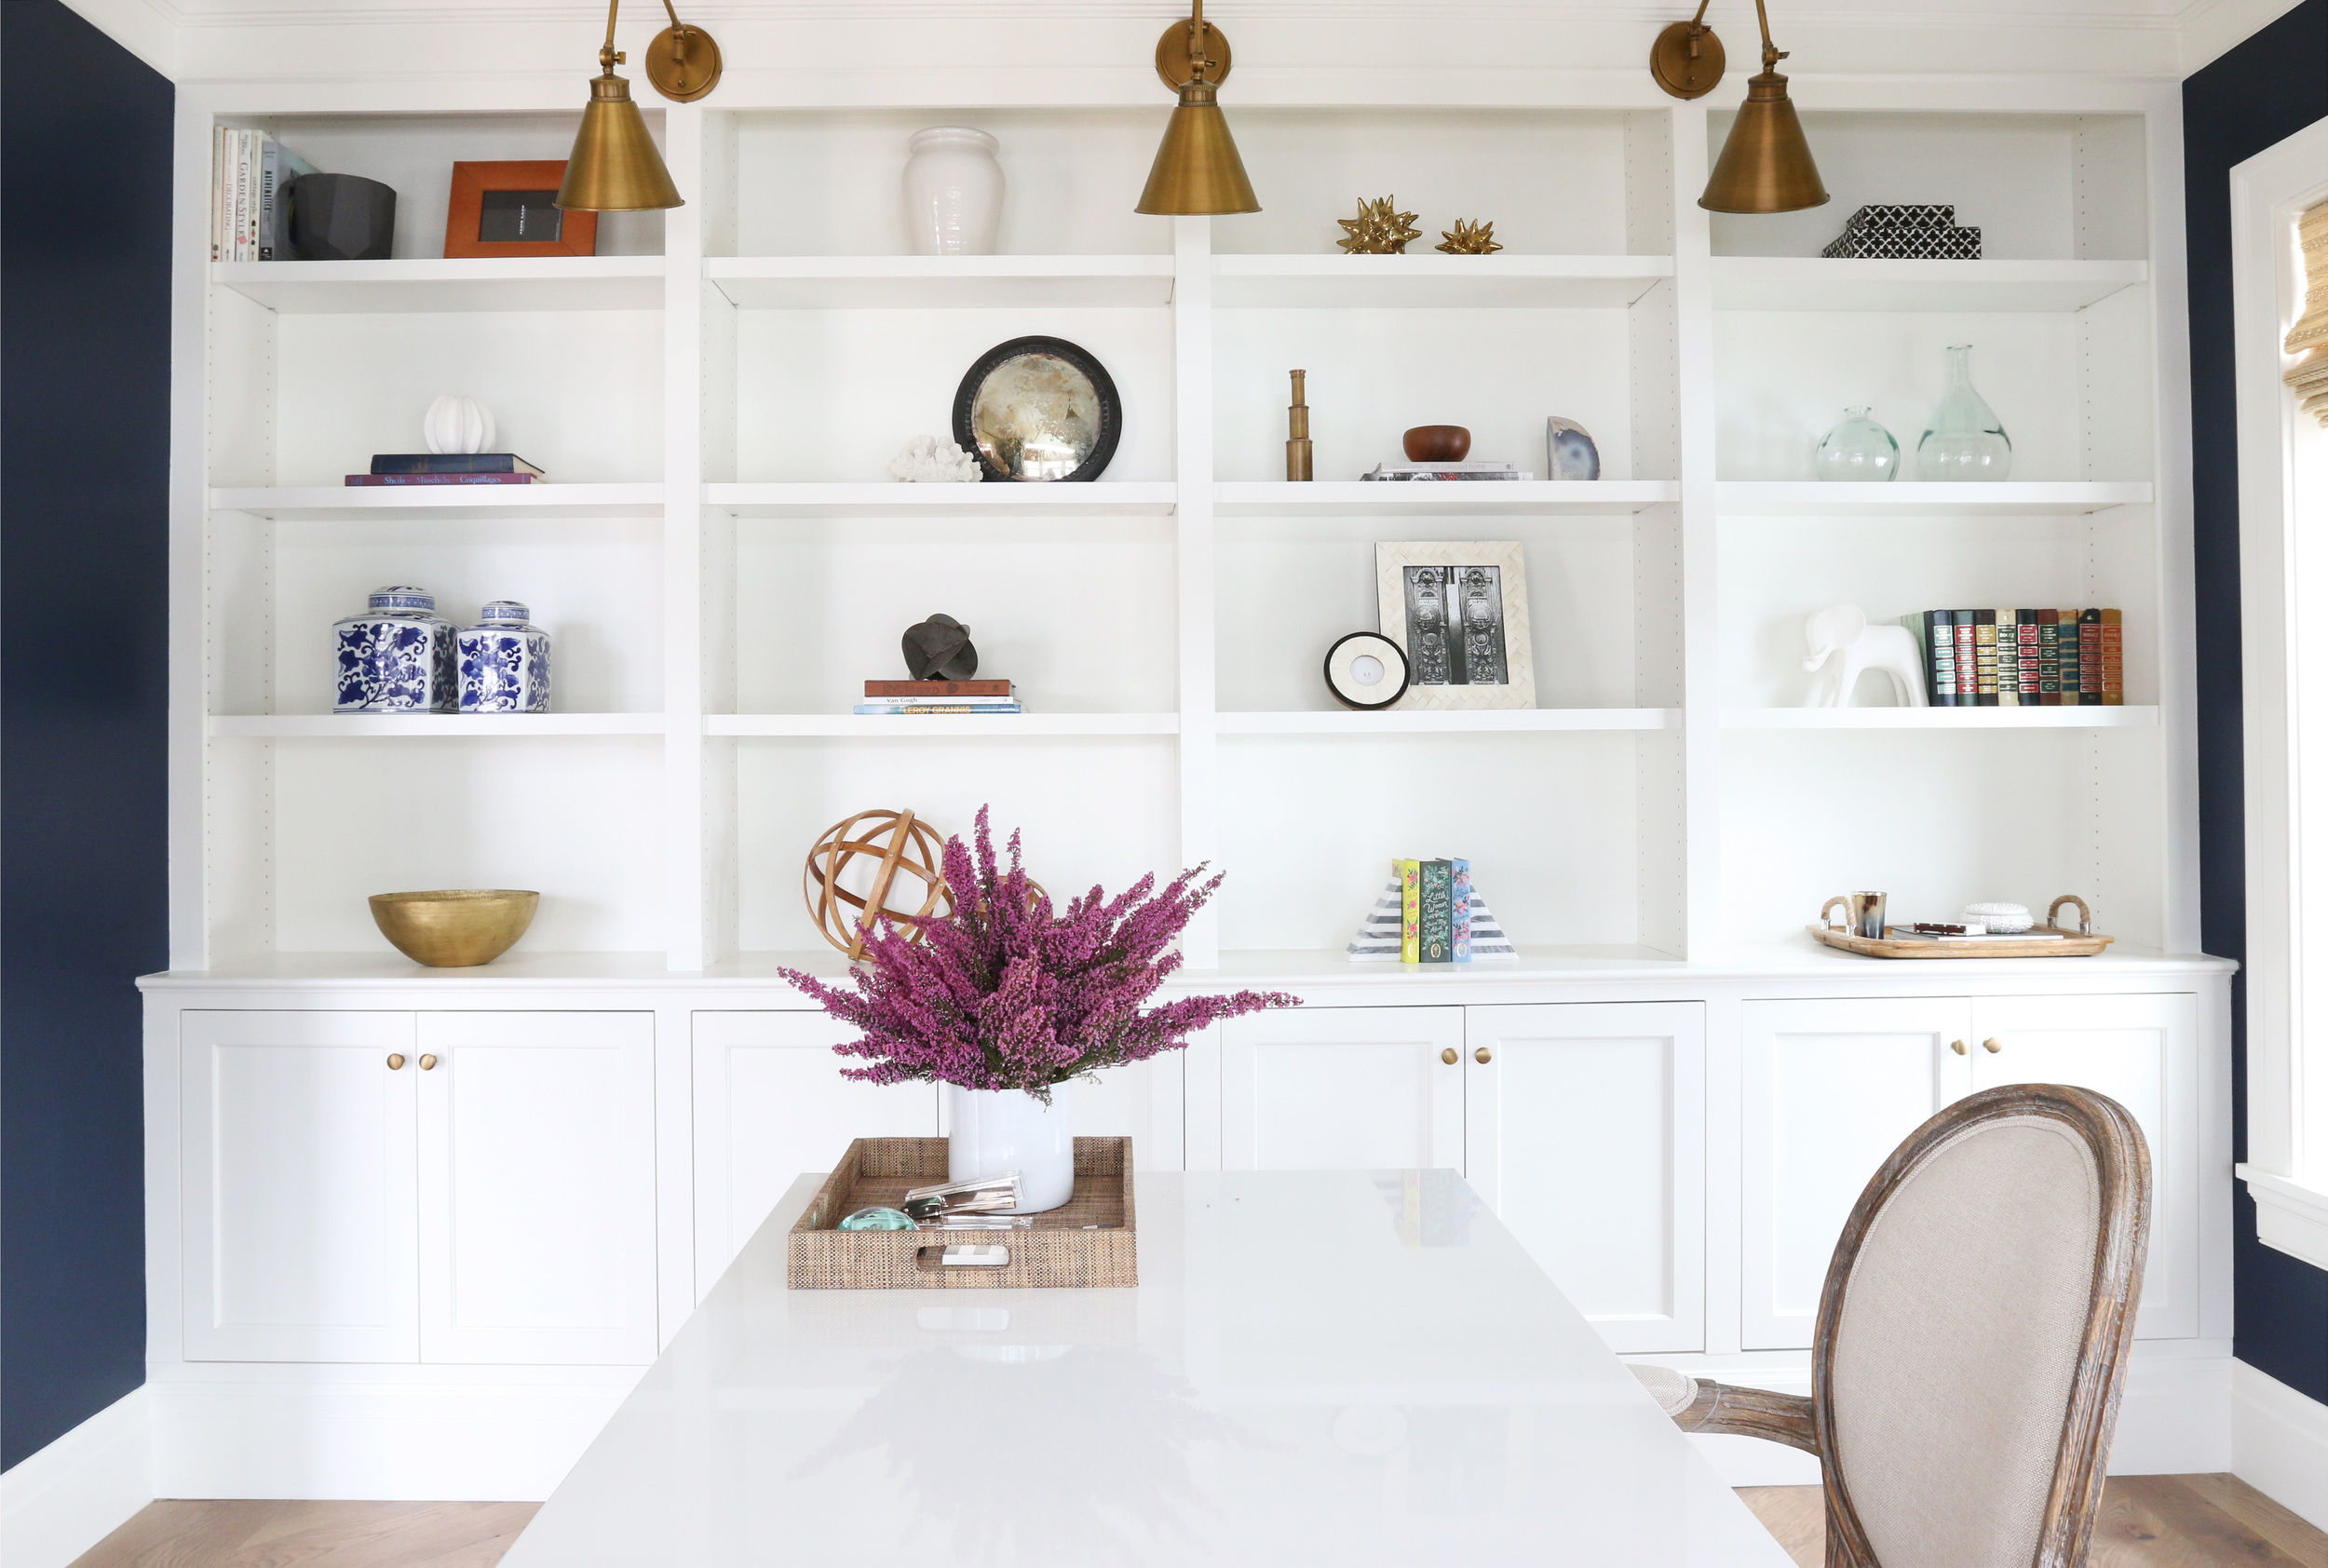 Built-ins with brass lights    Studio McGee